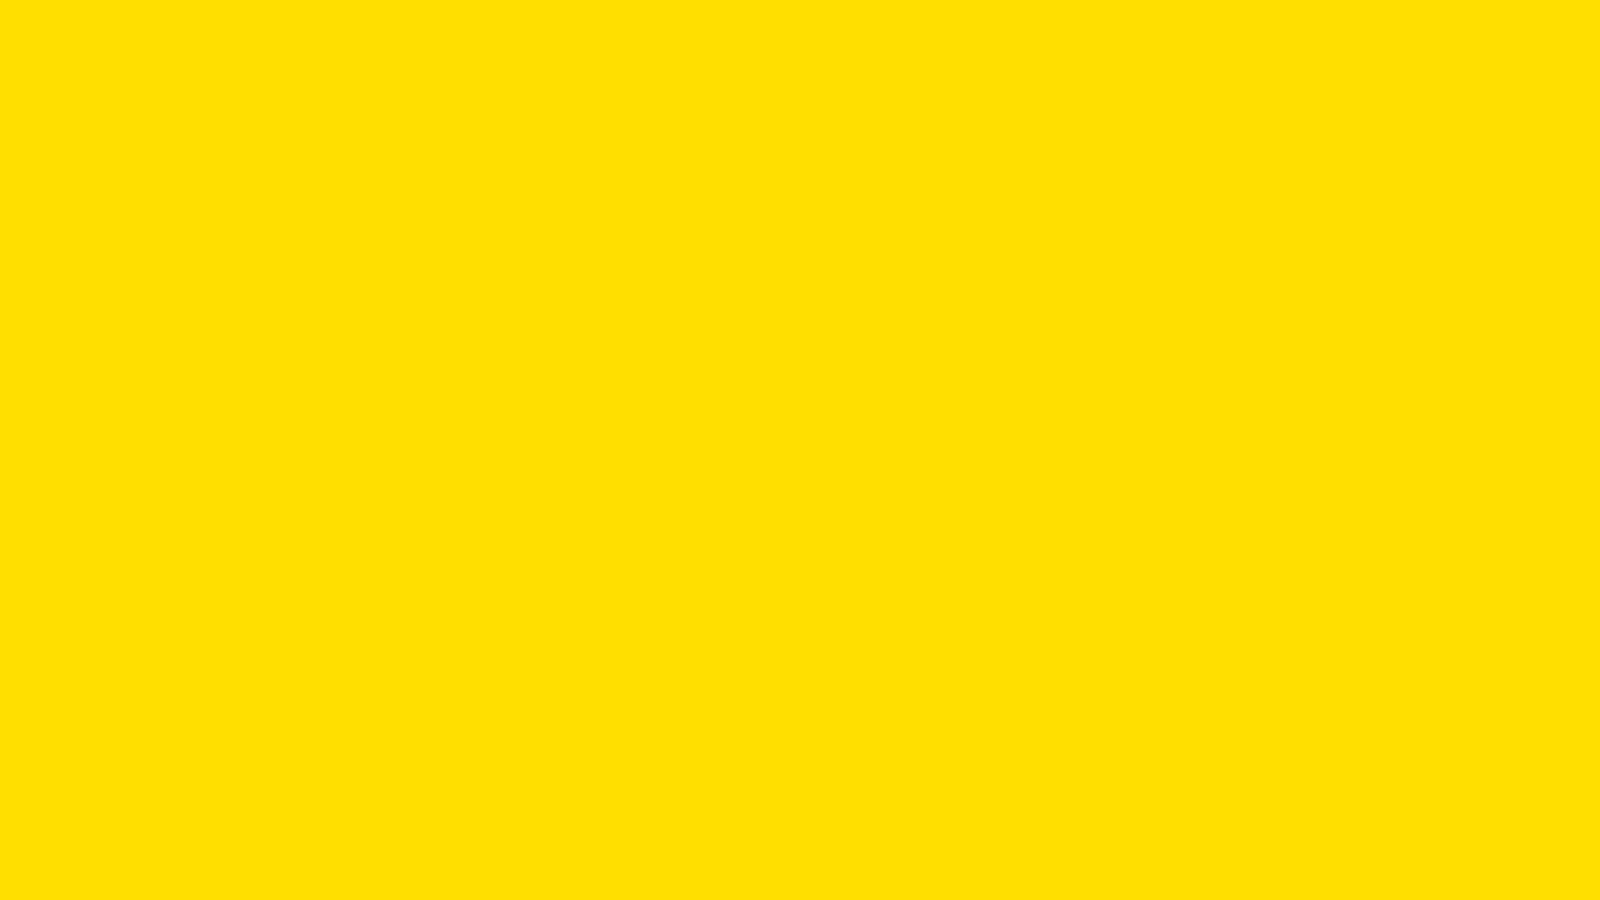 1600x900 Yellow Pantone Solid Color Background